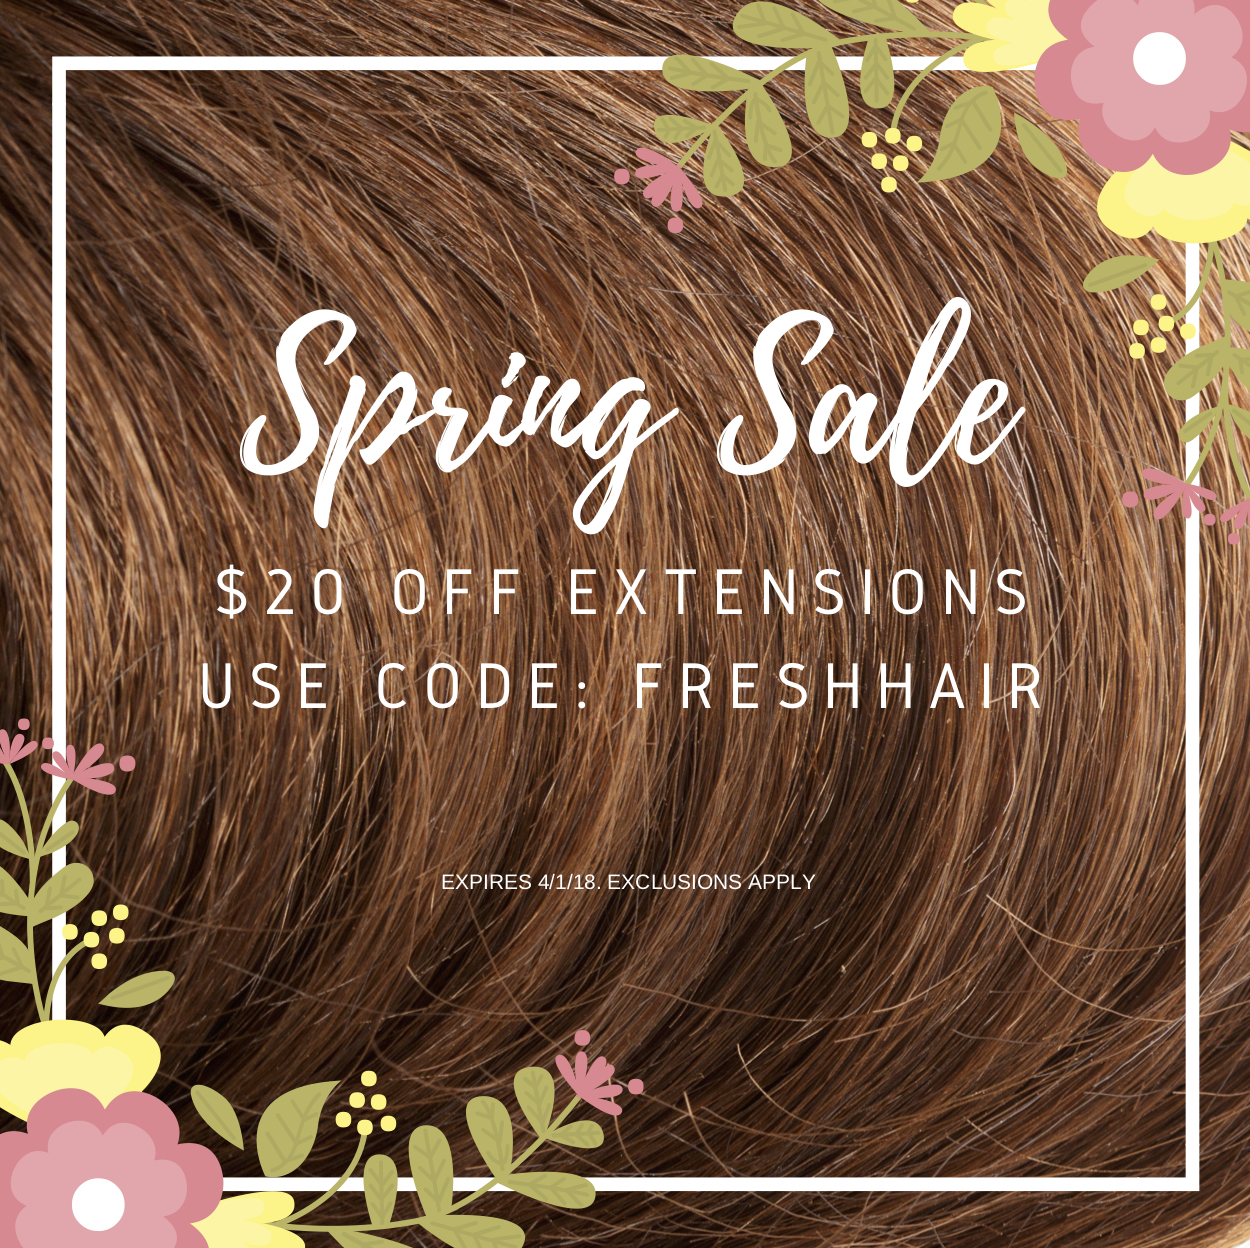 cashmere hair Spring Sale $20 off extensions